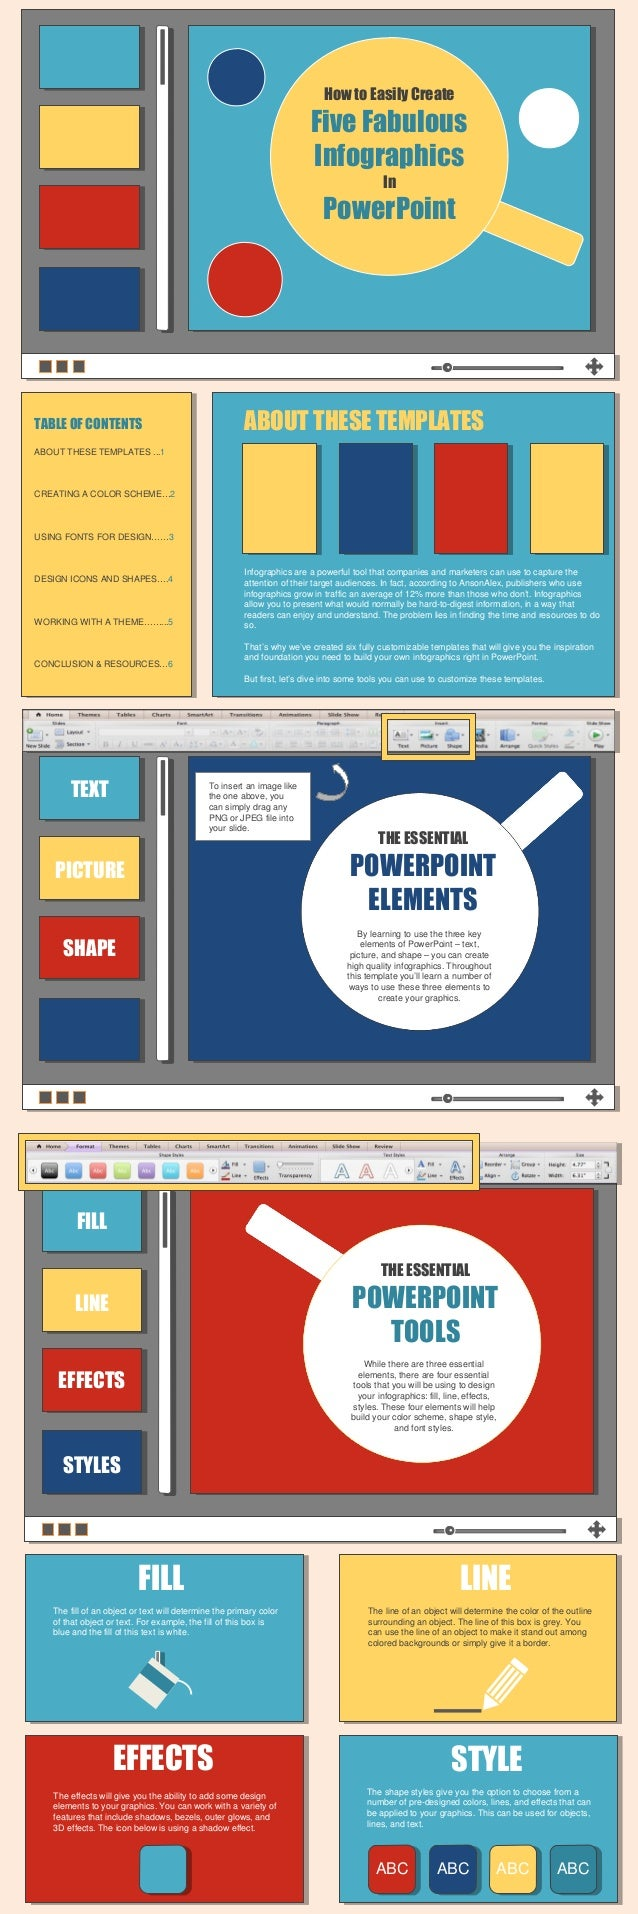 How to Easily Create Five Fabulous Infographics In PowerPoint TABLE OF CONTENTS ABOUT THESE TEMPLATES ...1 CREATING A COLO...